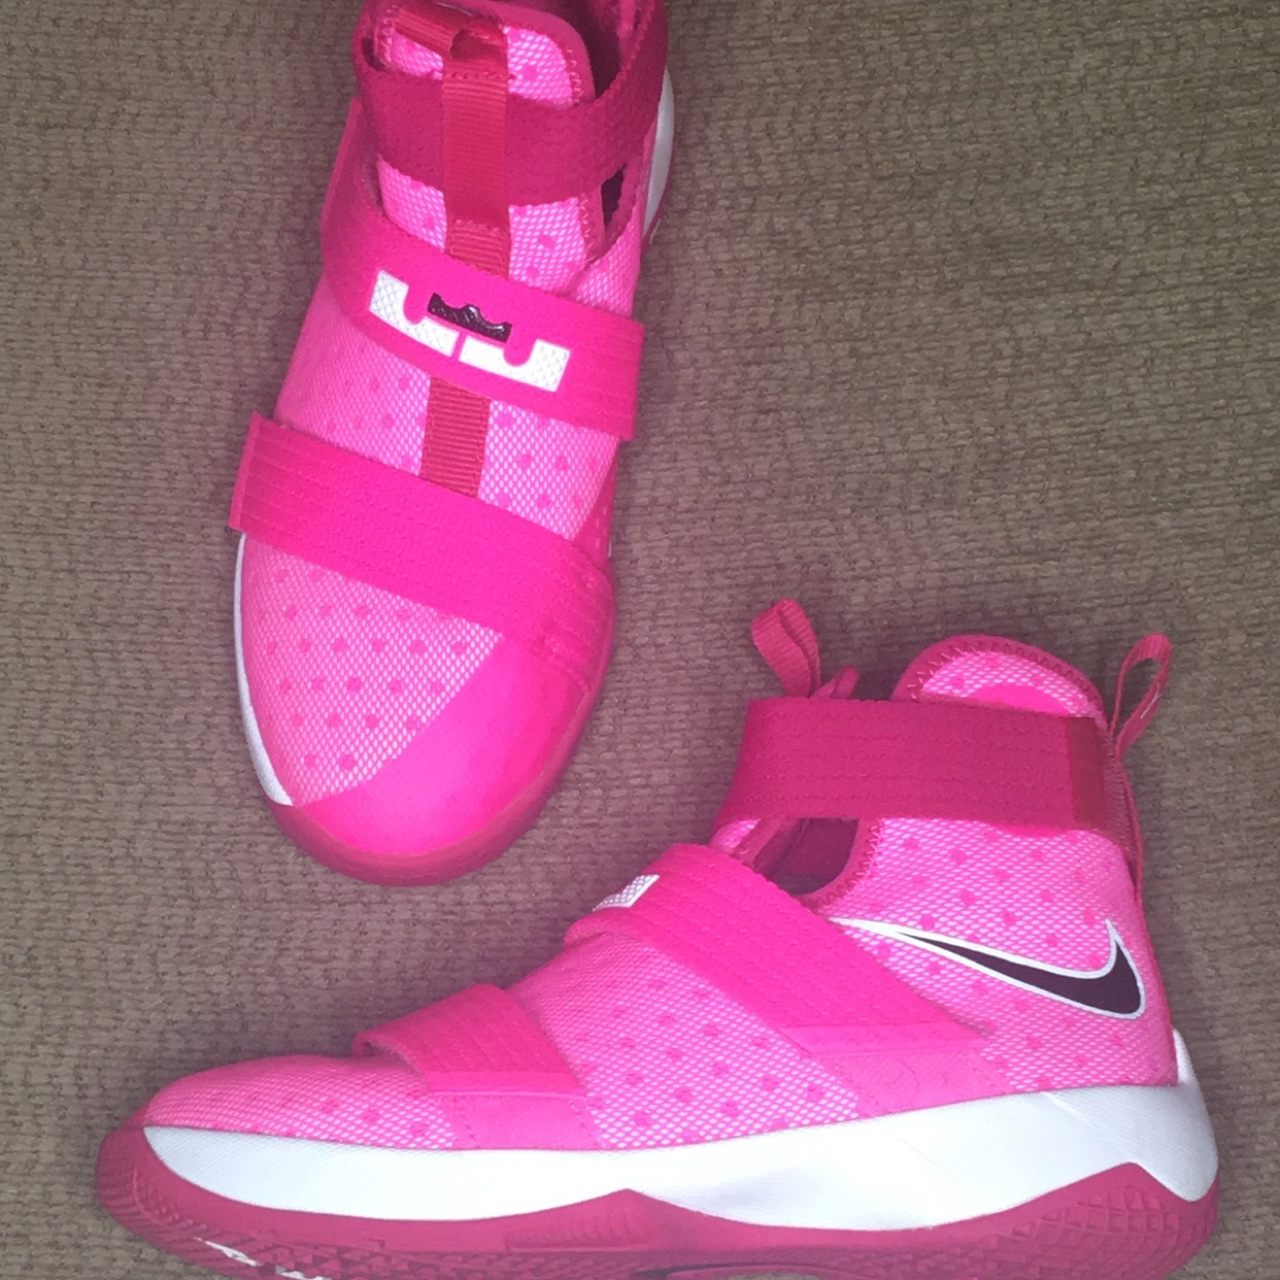 official photos 2daab 1e12b Pink & White Nike LeBron Soldier 10 (Breast Cancer... - Depop